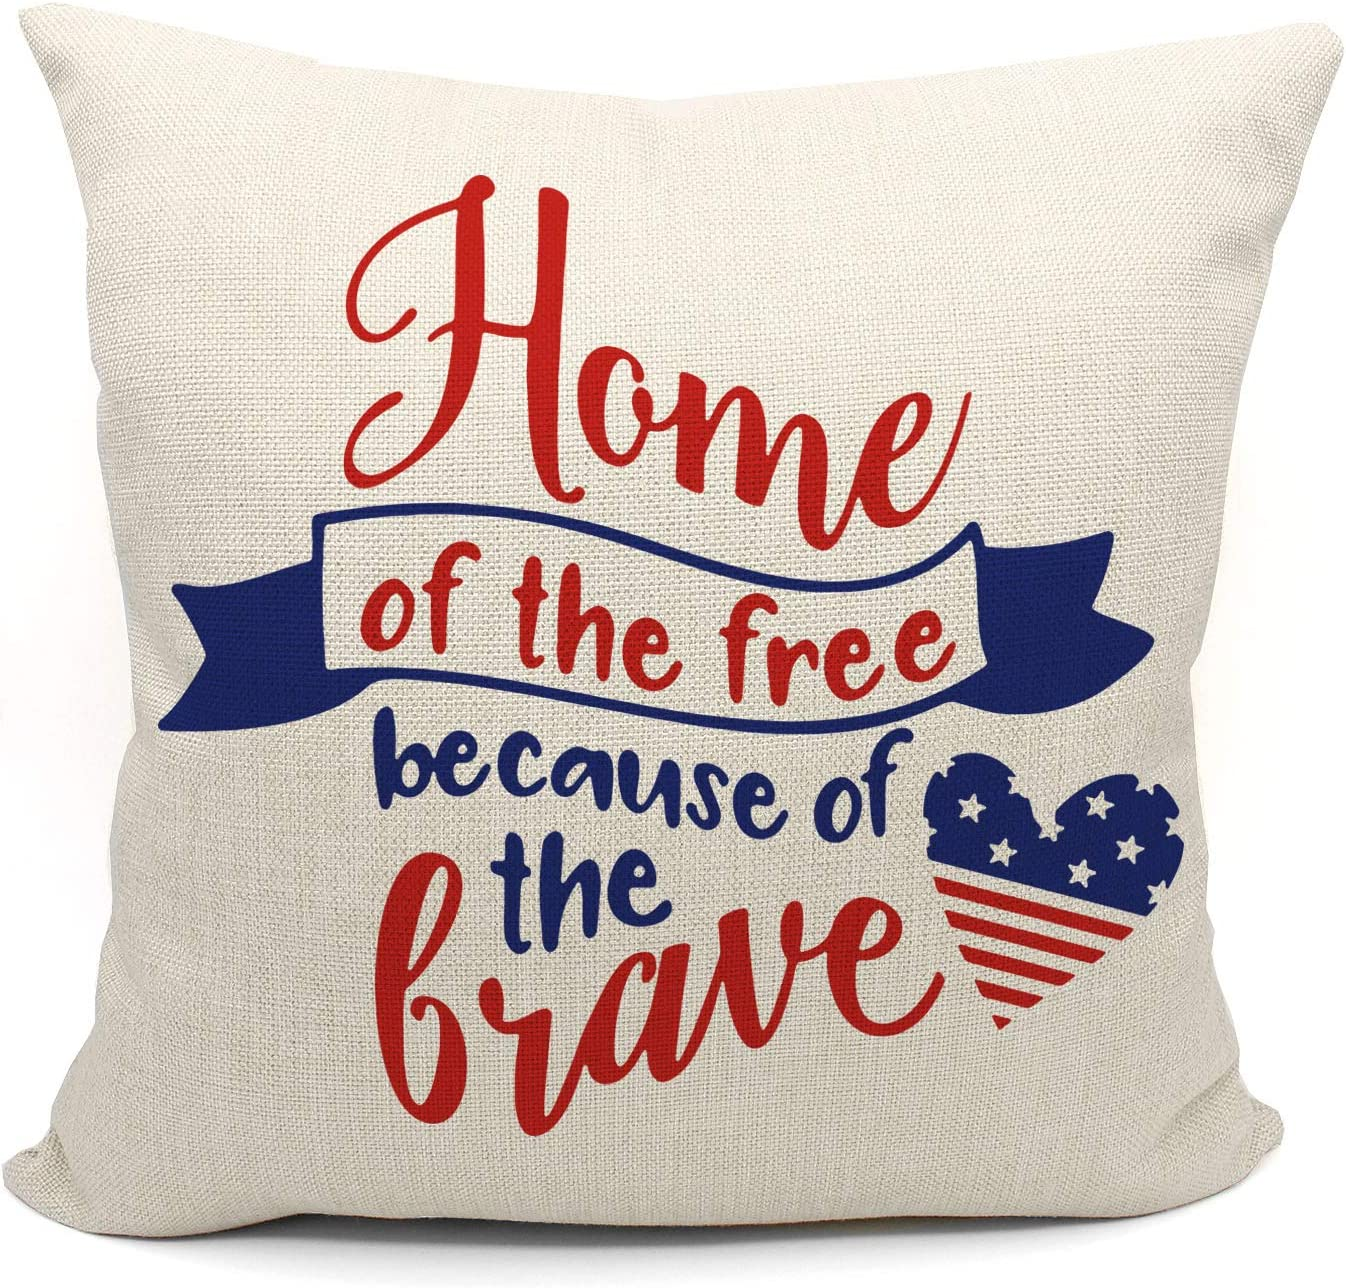 Mancheng-zi Home of The Free Because of The Brave Throw Pillow Case, of July Citizenship Veteran Gift, 18 x 18 Inch Decorative Cotton Linen Cushion Cover for Sofa Couch Bed, America Sign